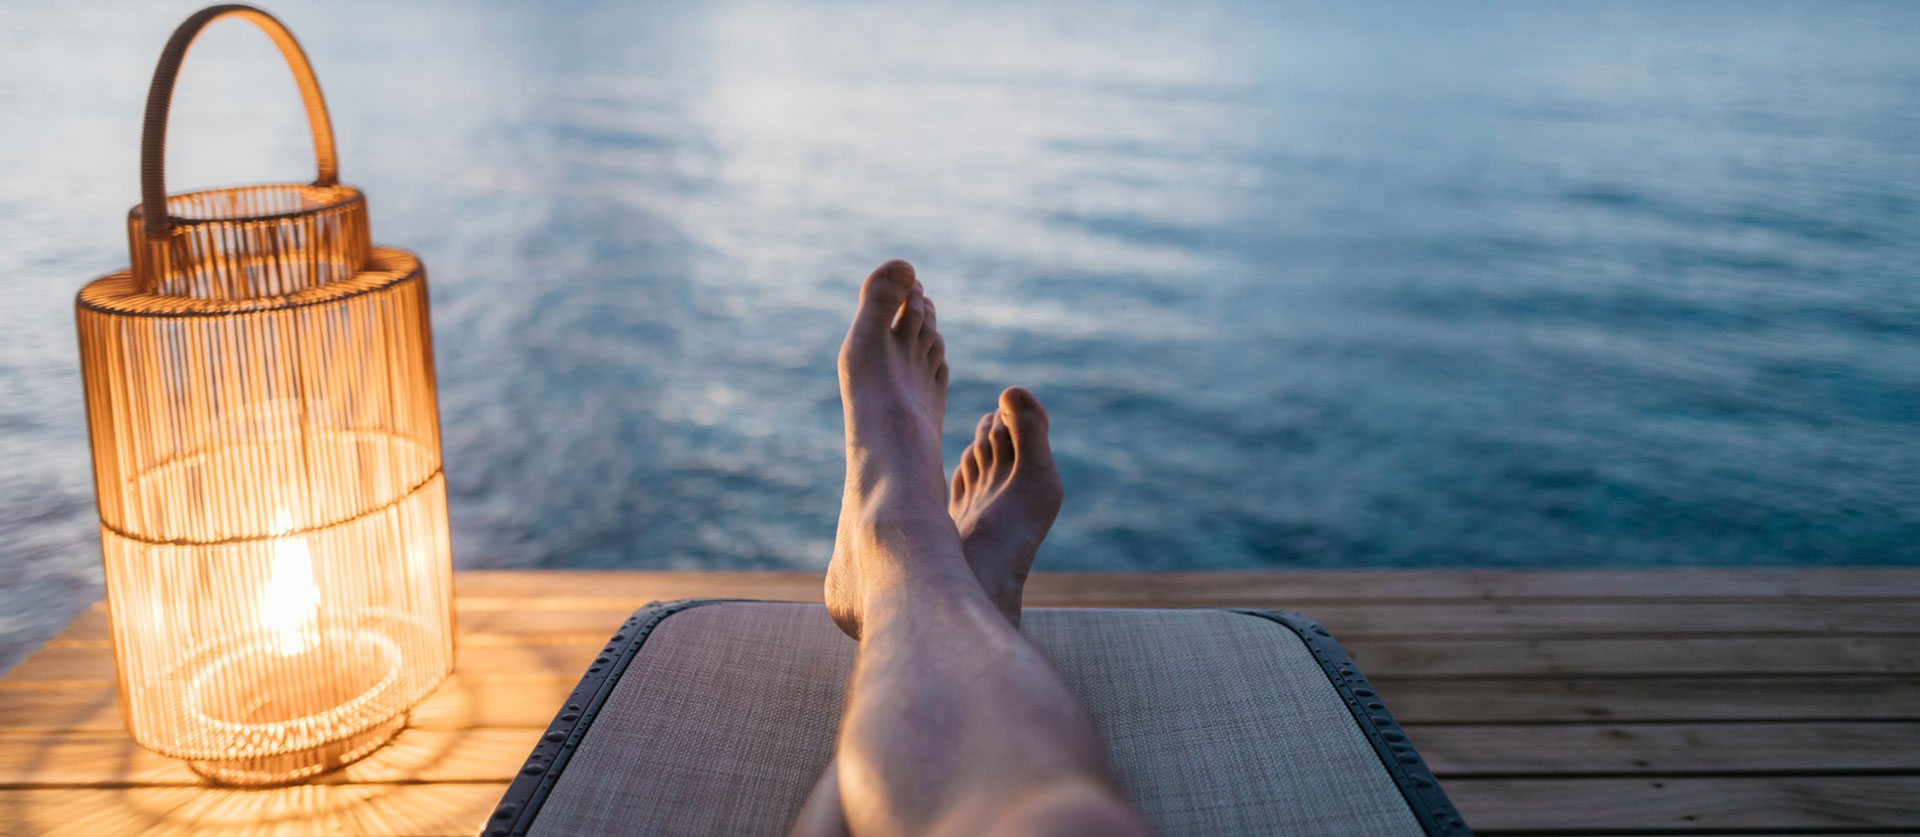 Feet on deck chair facing water